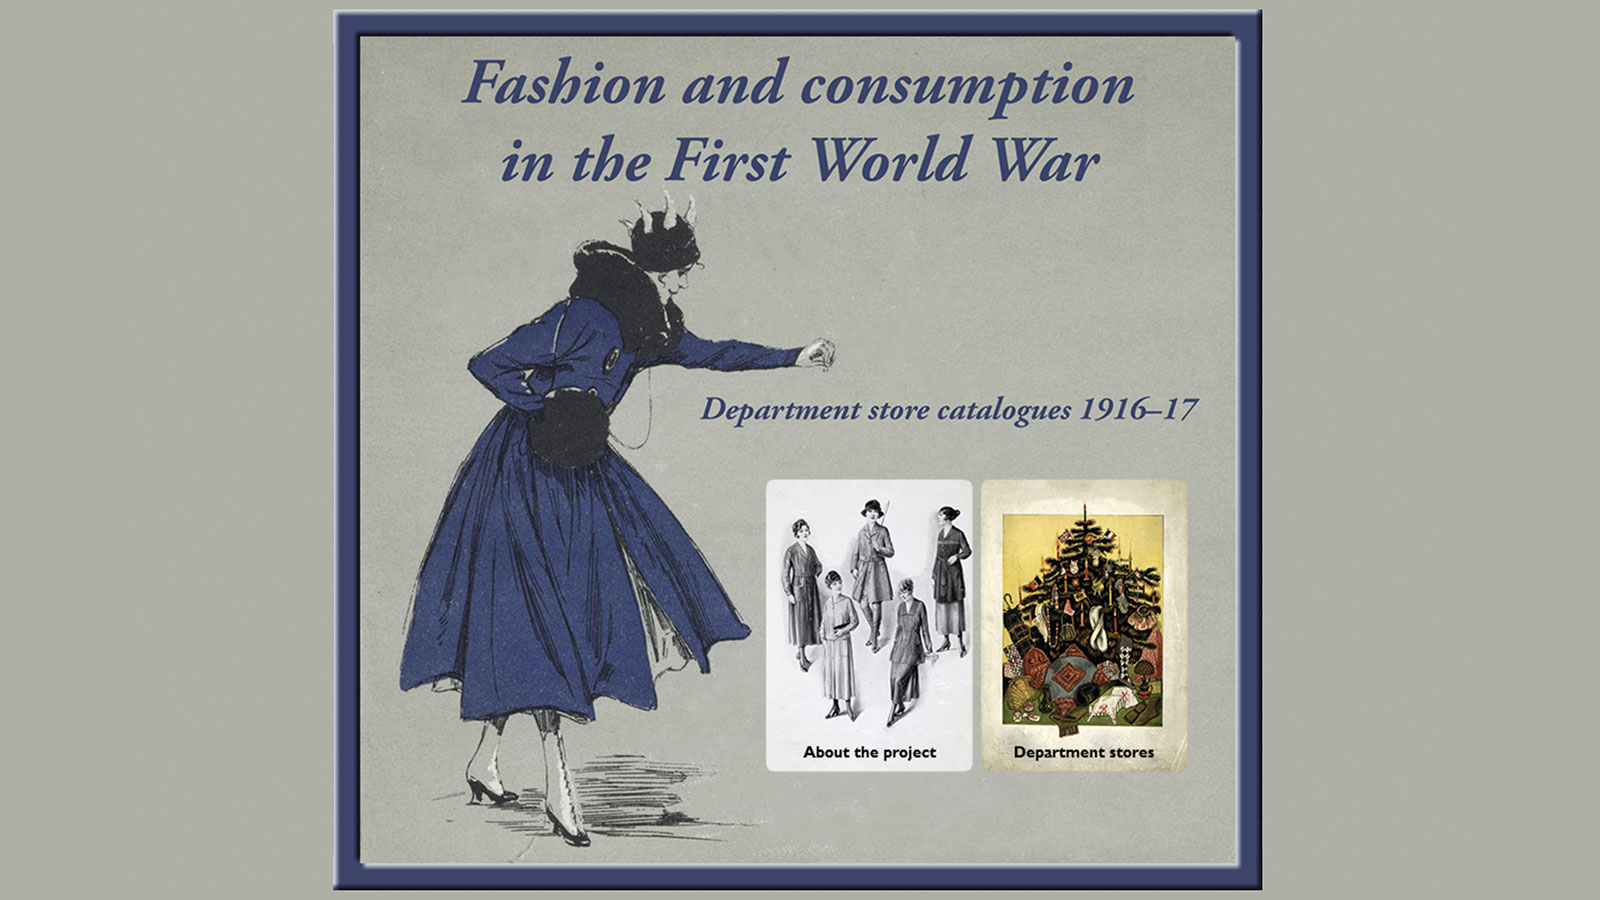 Fashion and consumption in the First World War